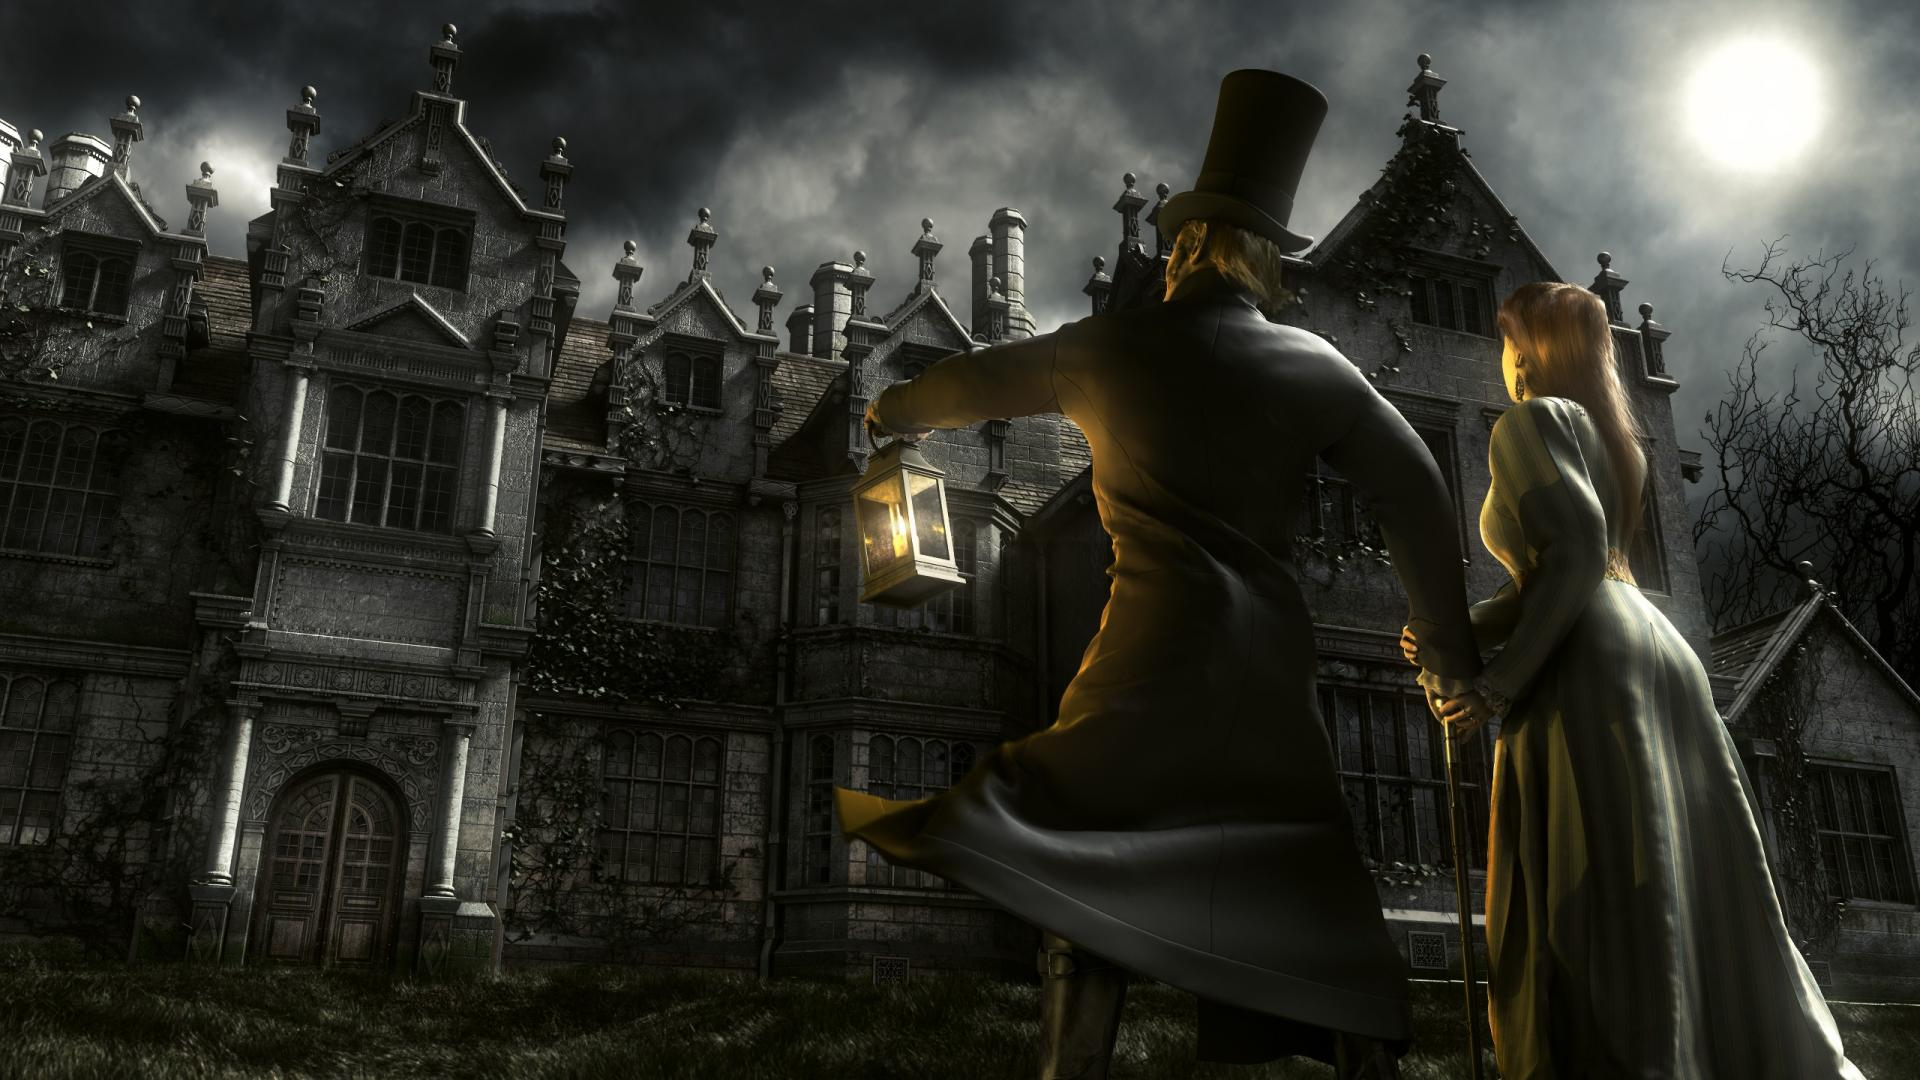 Free Download Fantasy Art Darkness King Diamond Mansion Wallpaper